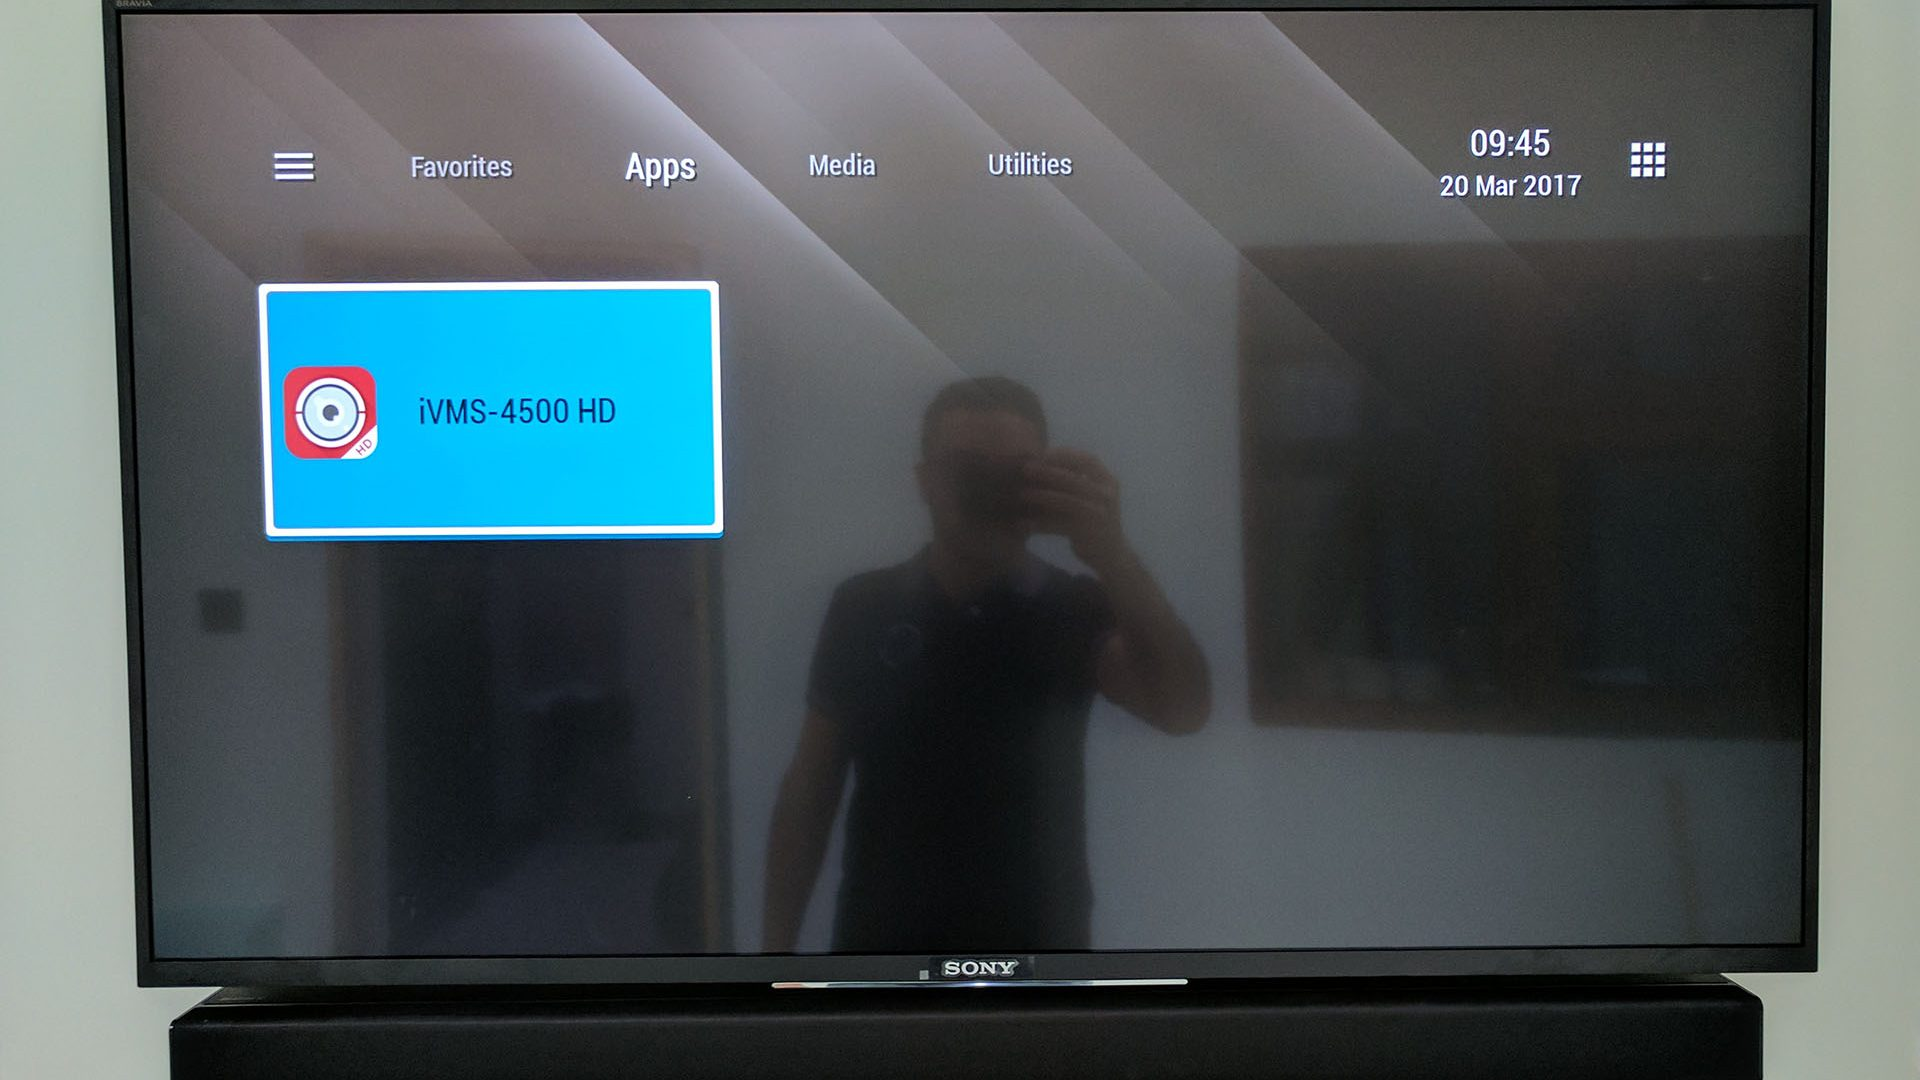 installare app su smart tv samsung